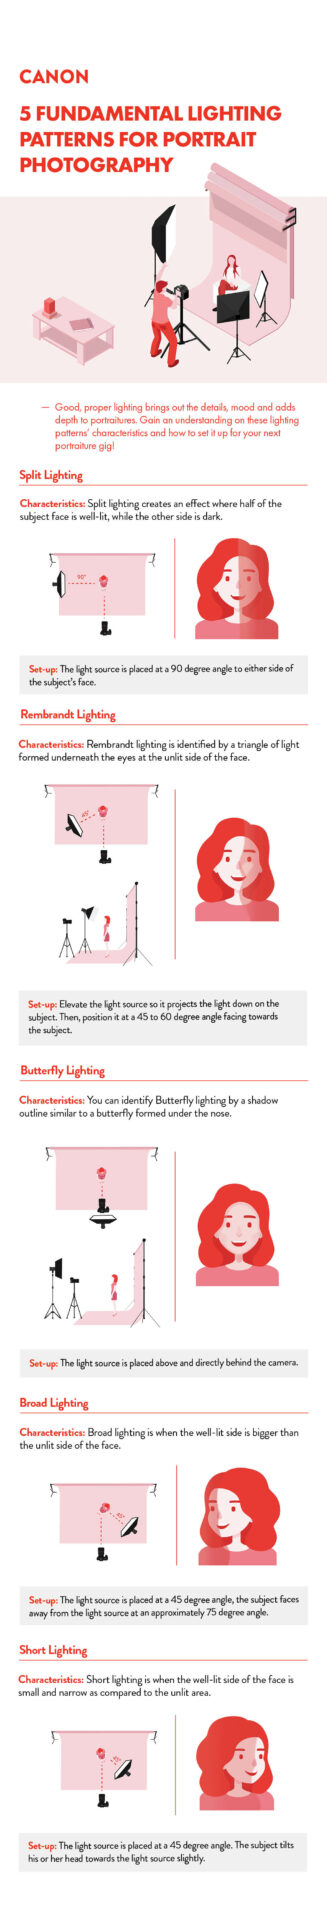 Infographic Lighting Settings for Home Photoshoot Studio